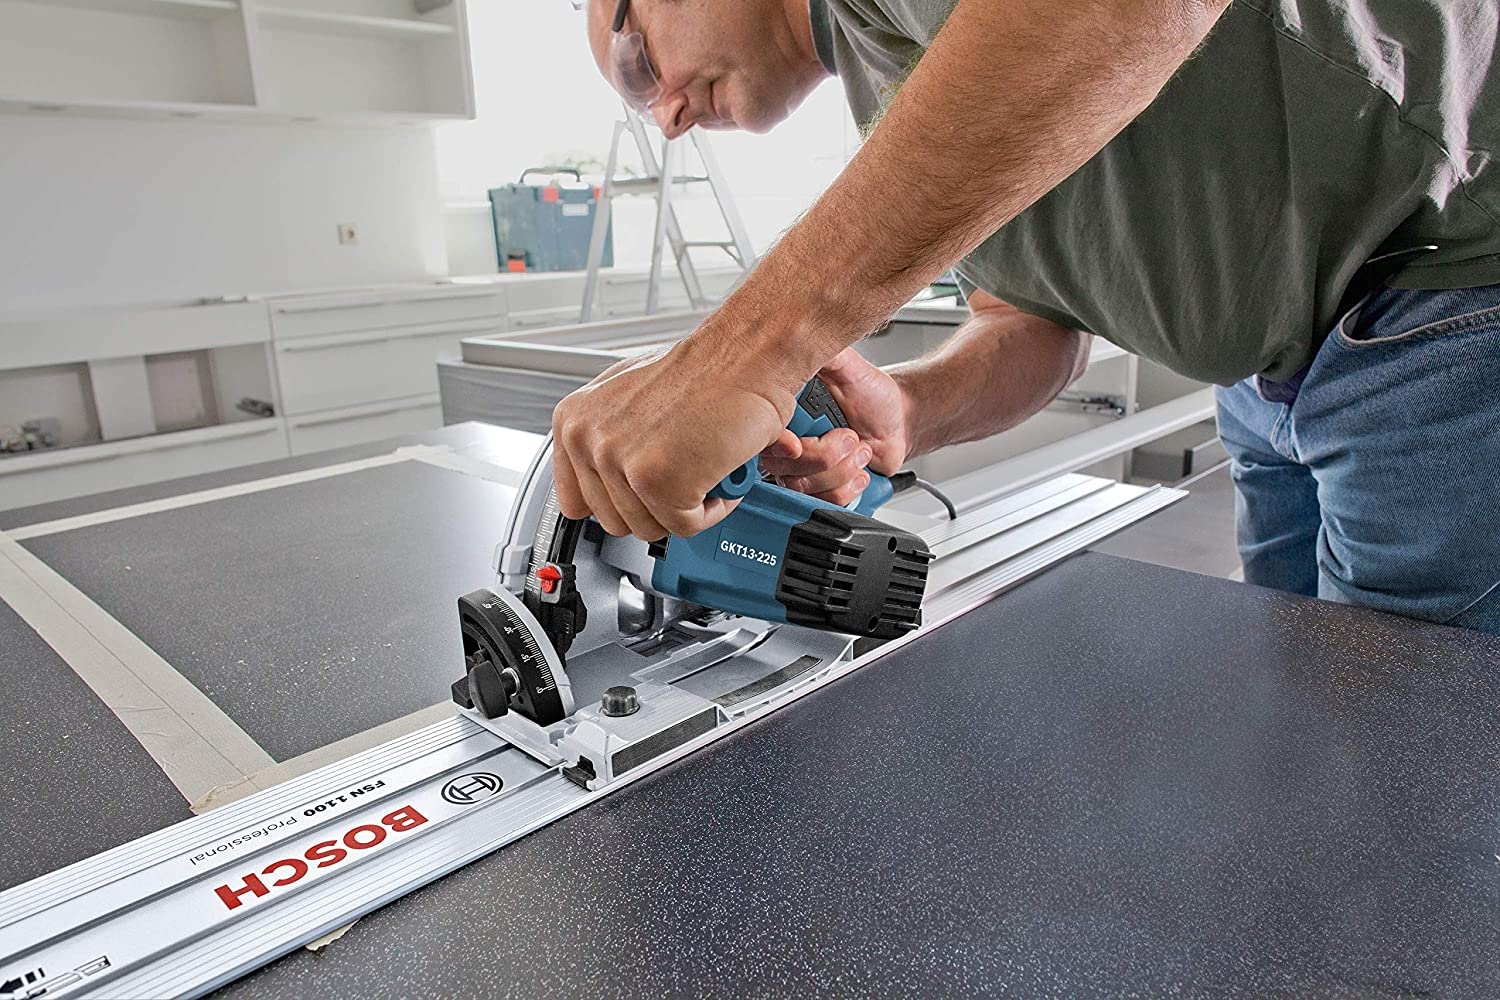 demonstration of bosch track saw